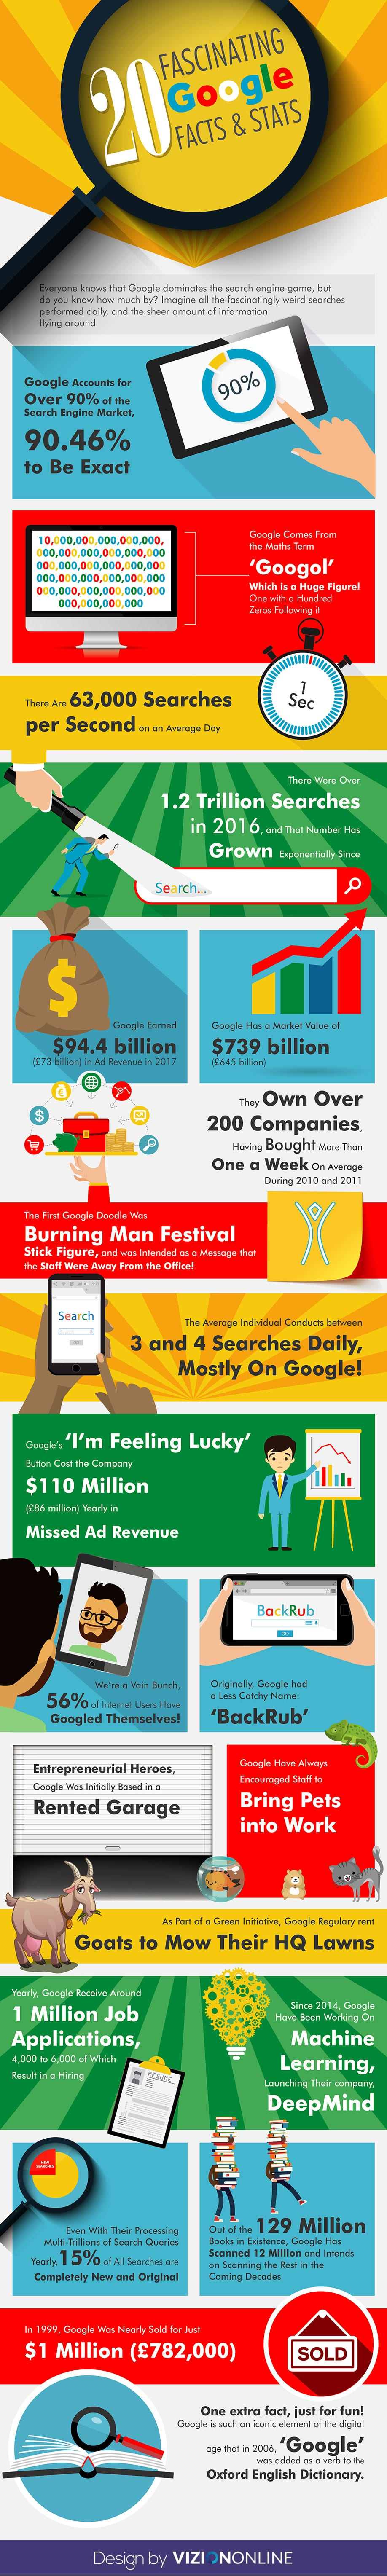 20 Fascinating Google Facts & Stats